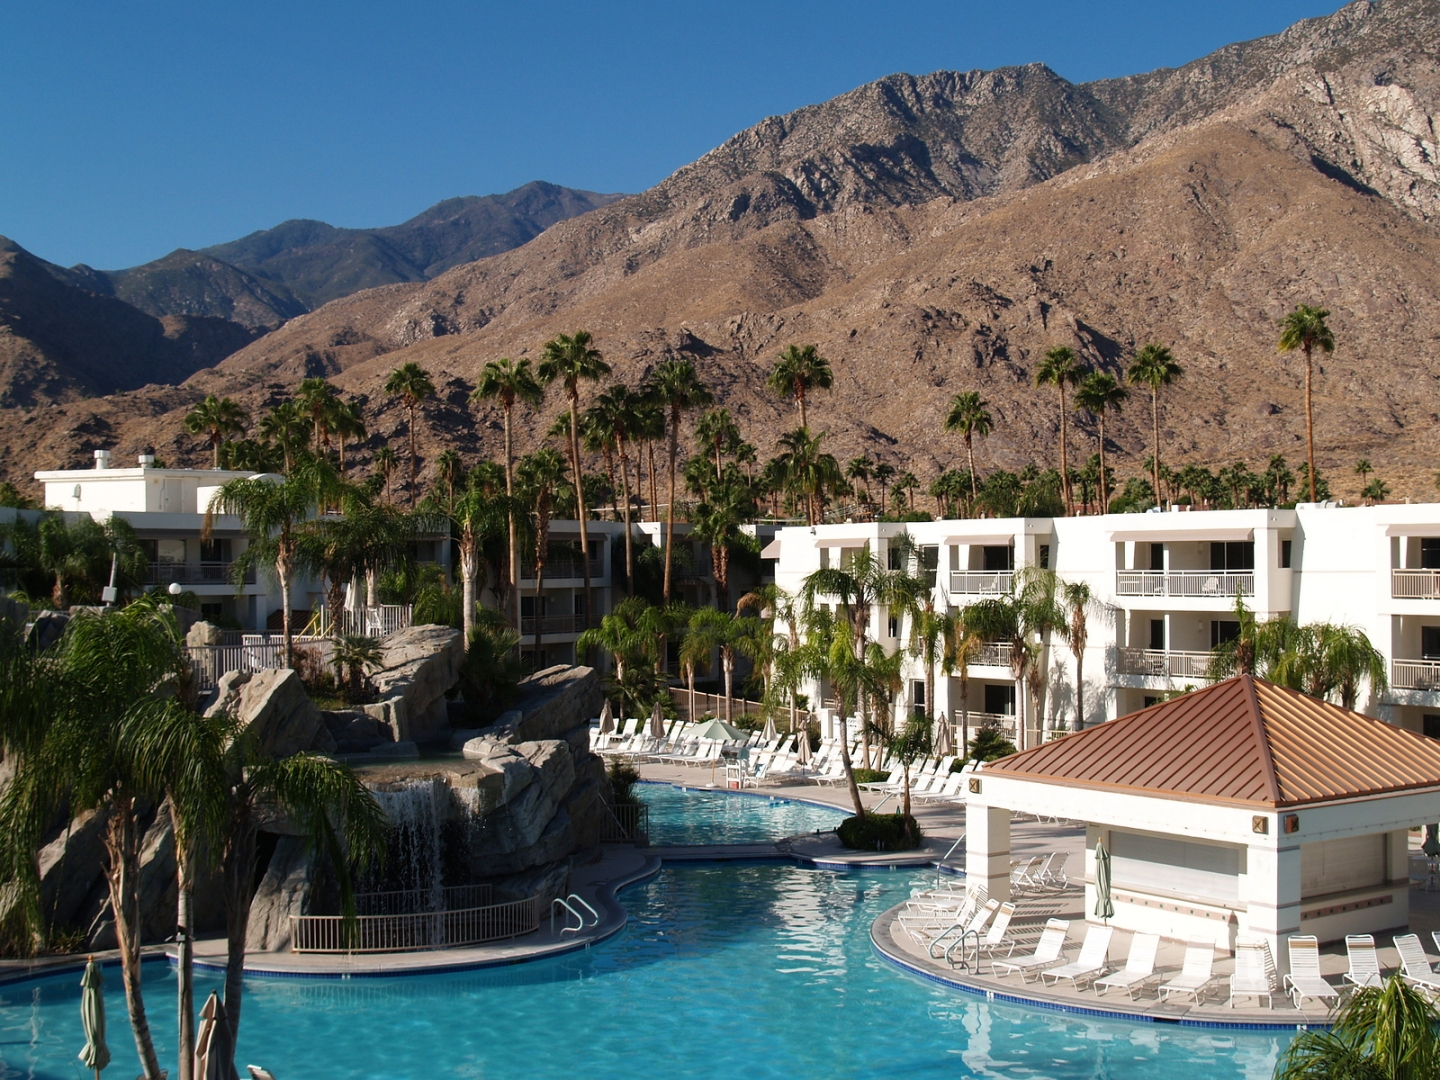 Contemporary Art and Architecture Tour – Palm Springs